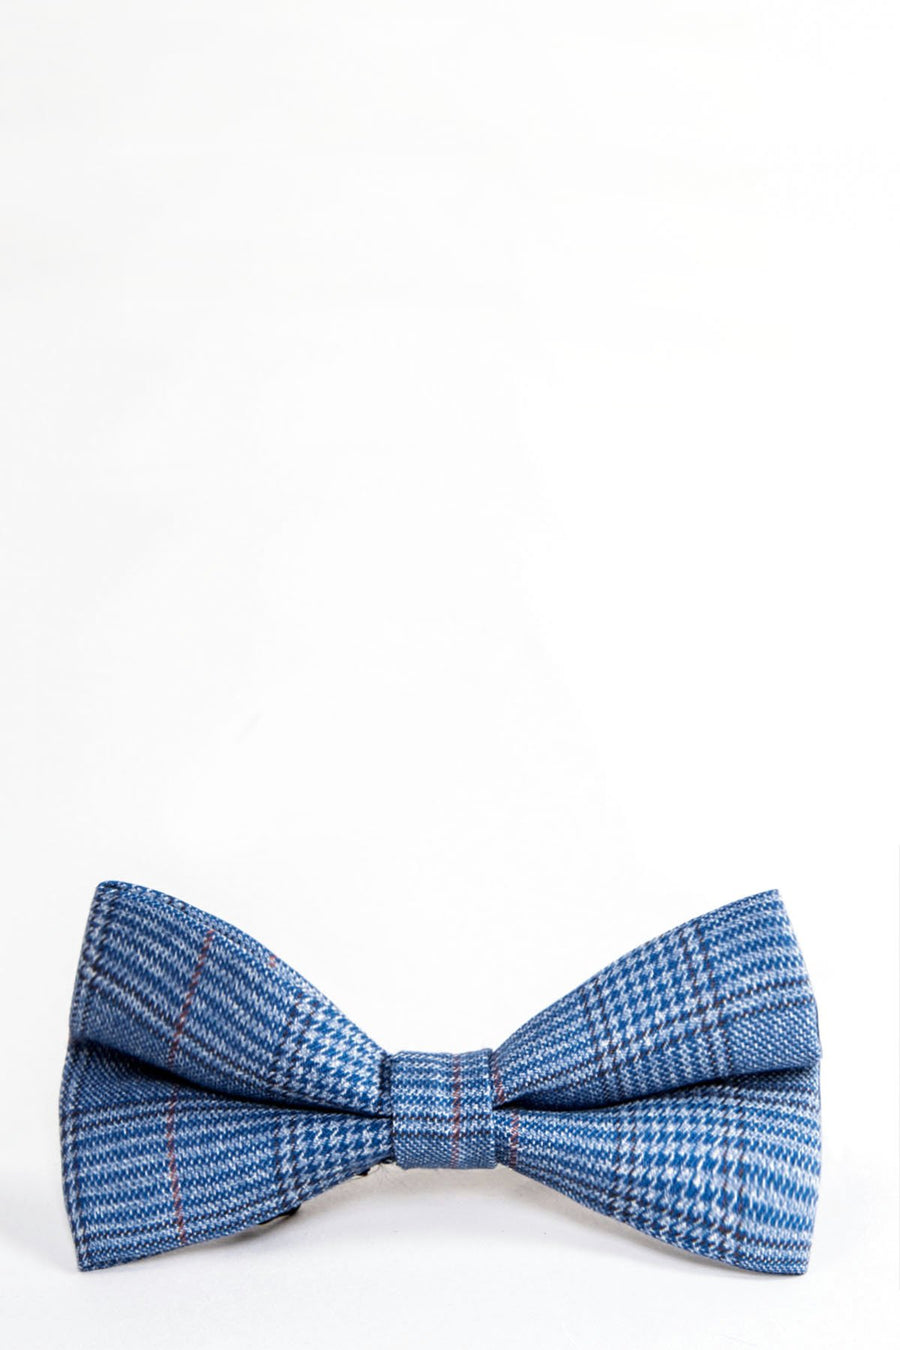 GEORGE Light Blue Check Bow Tie - Wedding Suit Direct